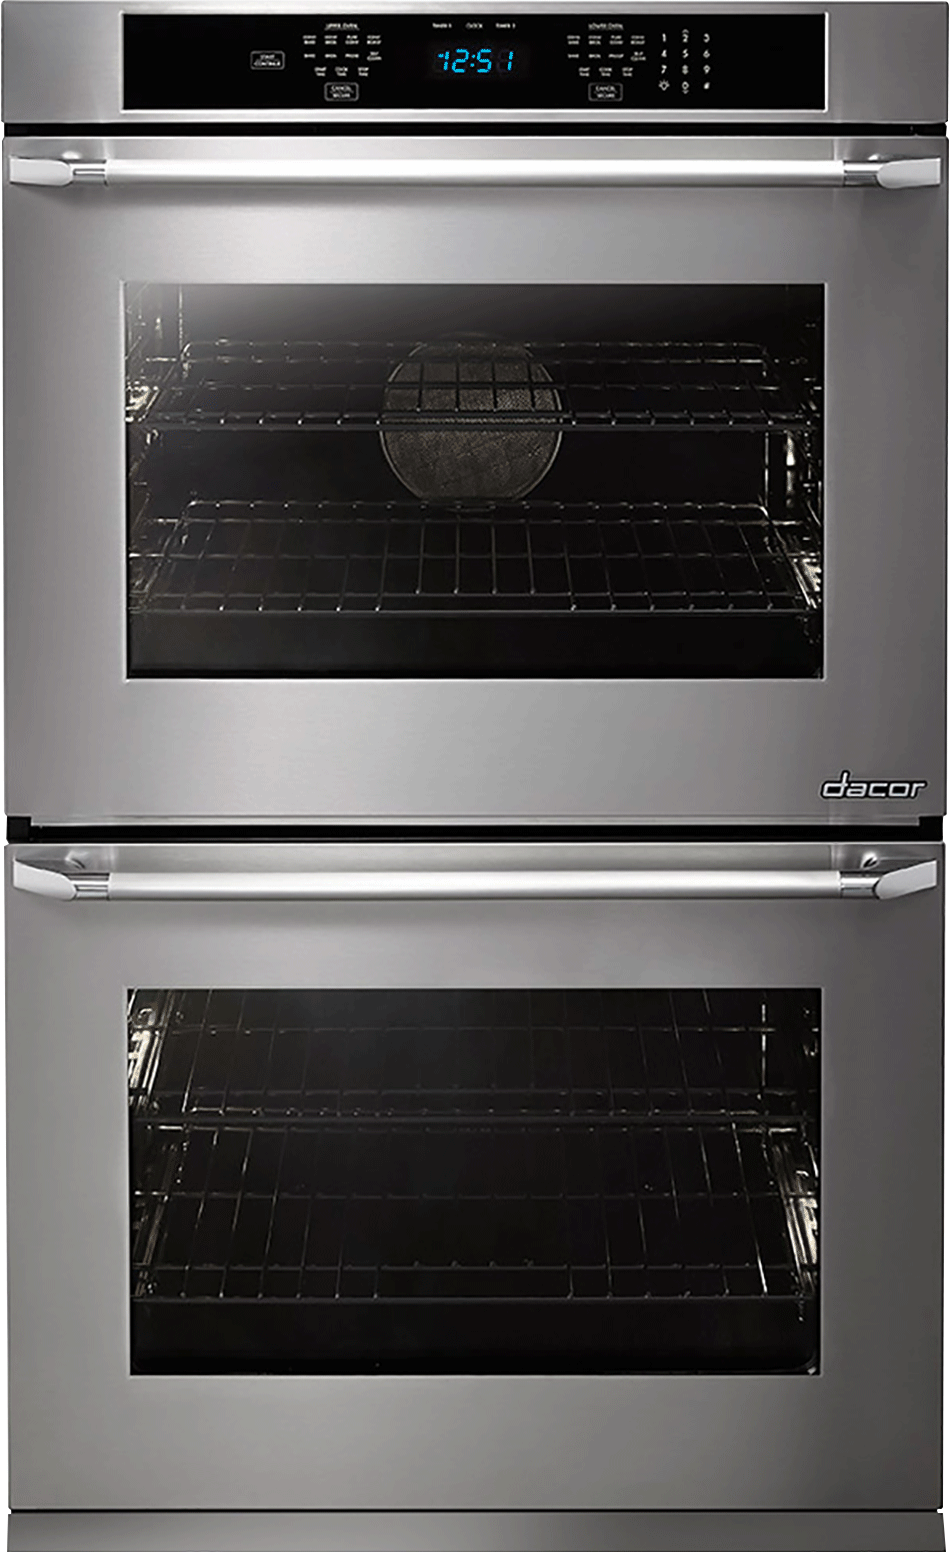 Dacor Dto227s208v 27 Inch Double Electric Wall Oven With 45 Cu Ft Wiring Diagram Convection Ovens 6 Cooking Modes Steam Self Clean Hidden Bake Element